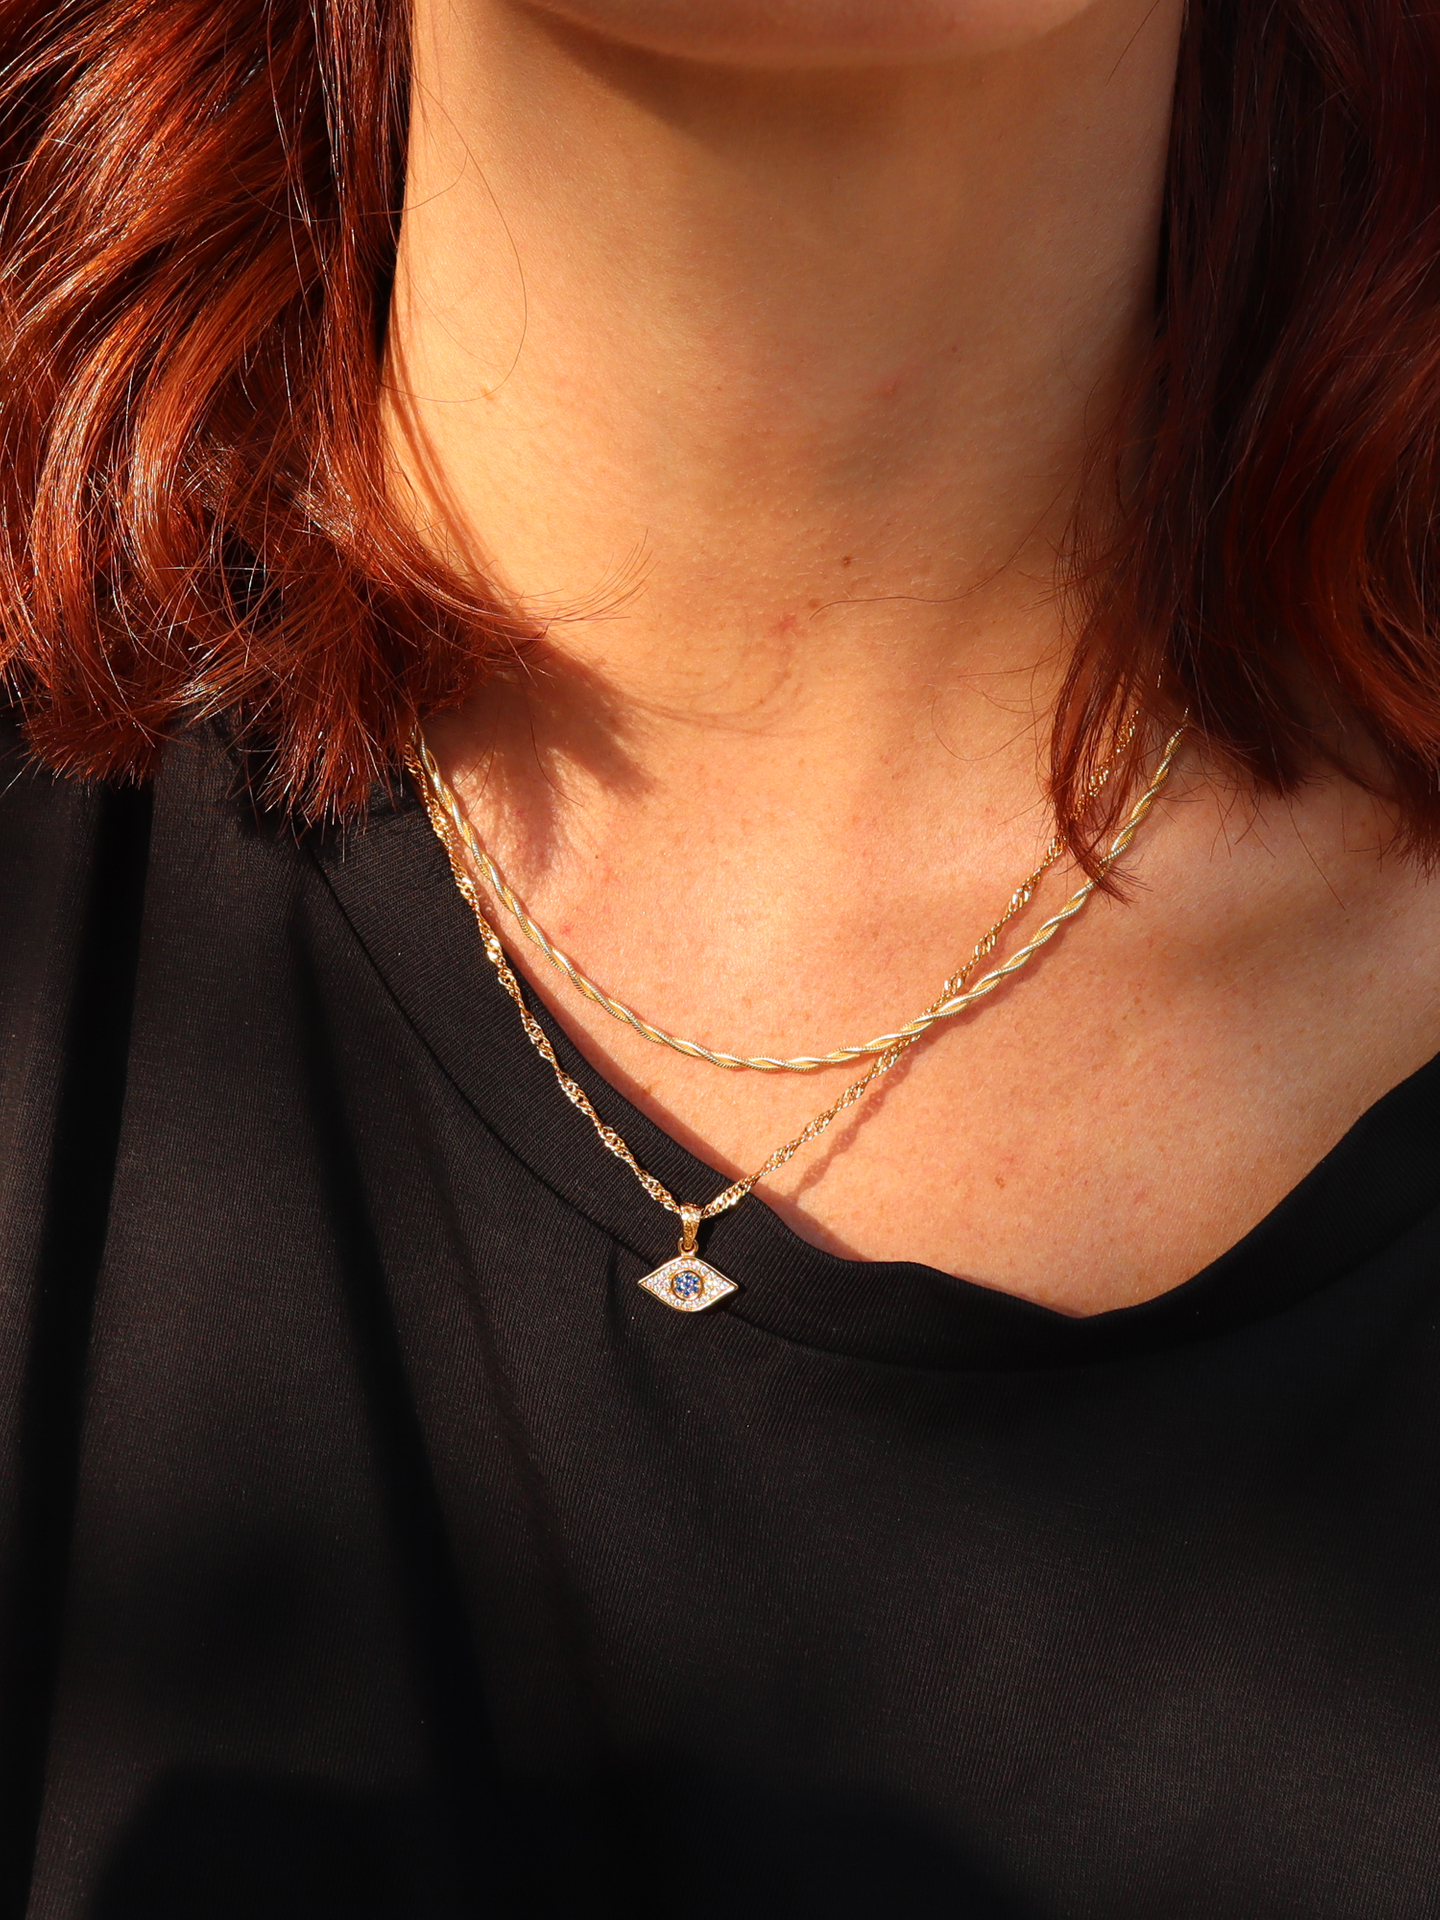 Watchful Eye Necklace